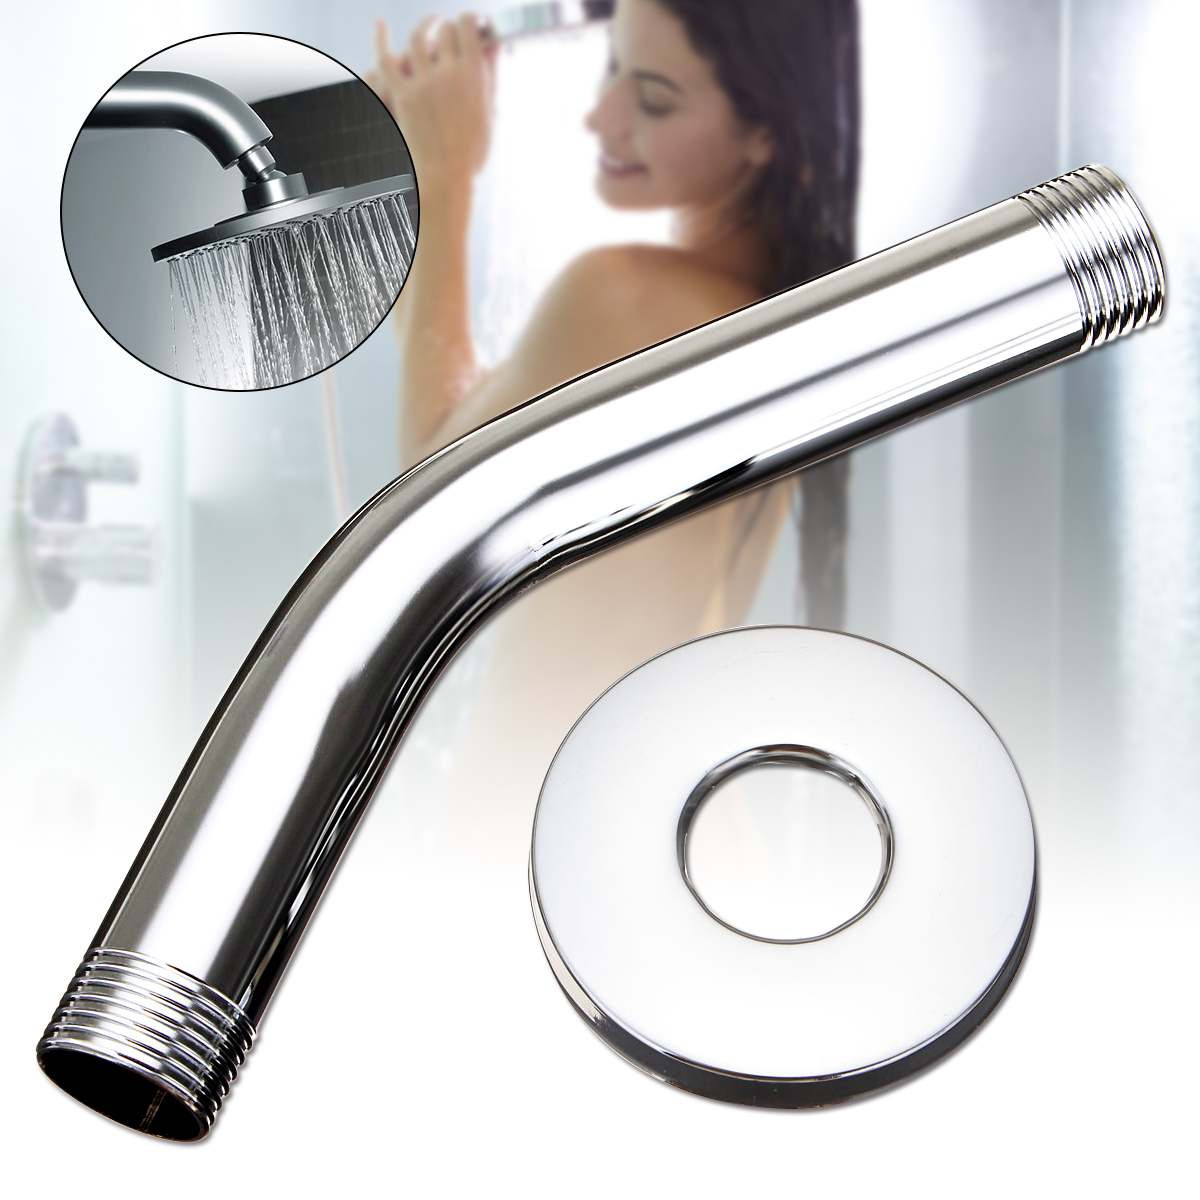 6'' Stainless Steel Chrome Shower Arm Wall Mount Shower Head Extension + Flange